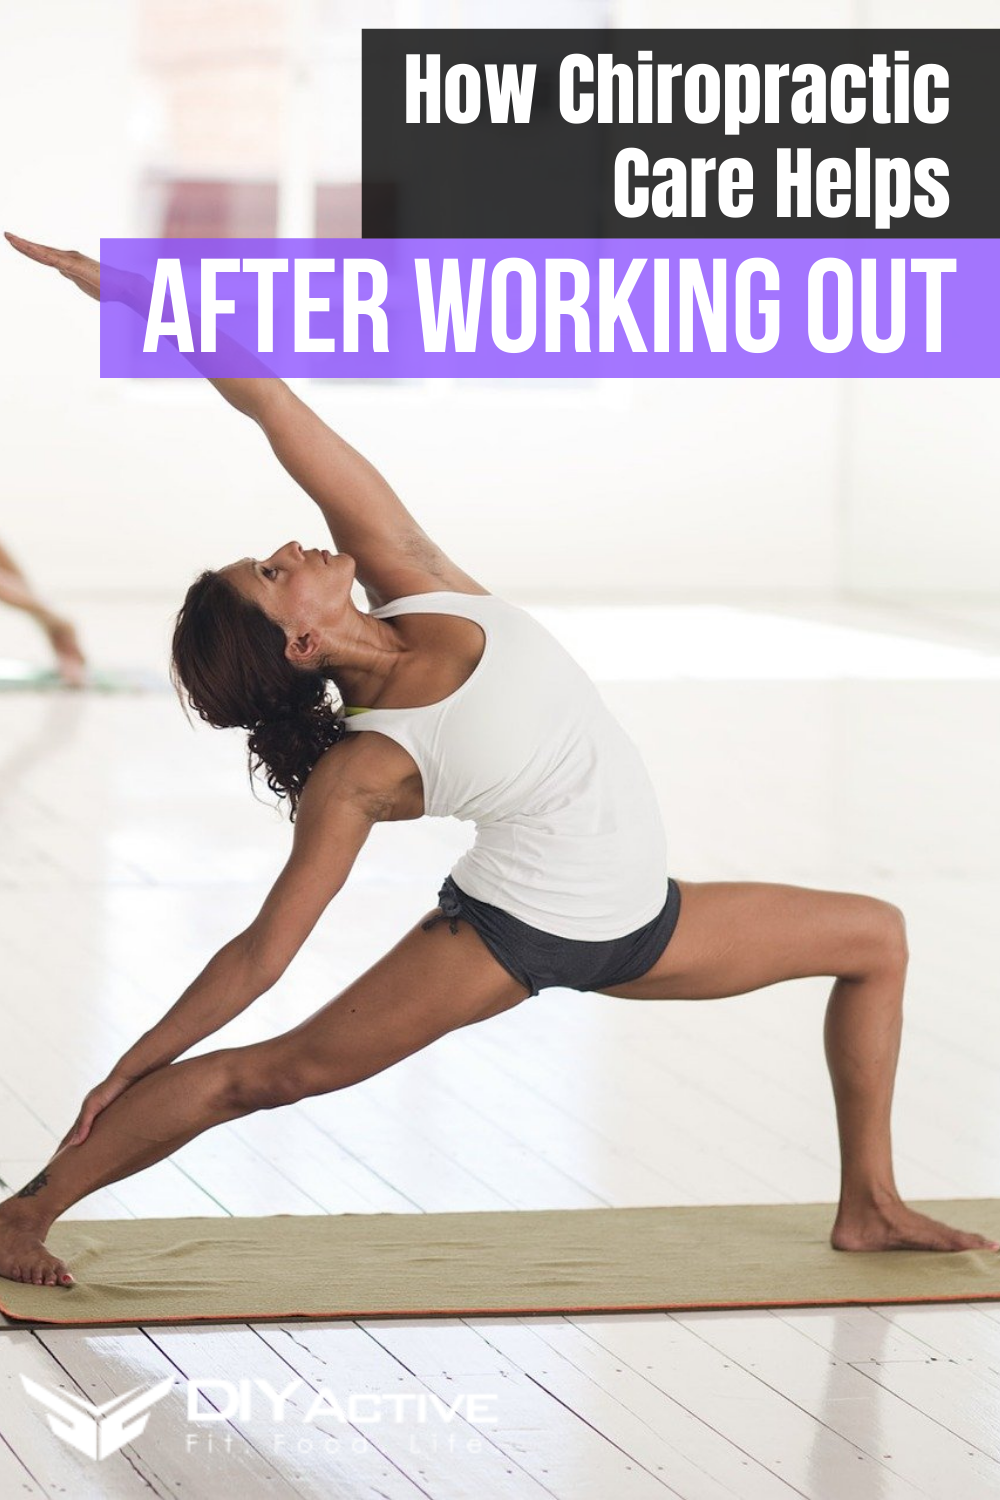 How Chiropractic Care Helps After Working Out